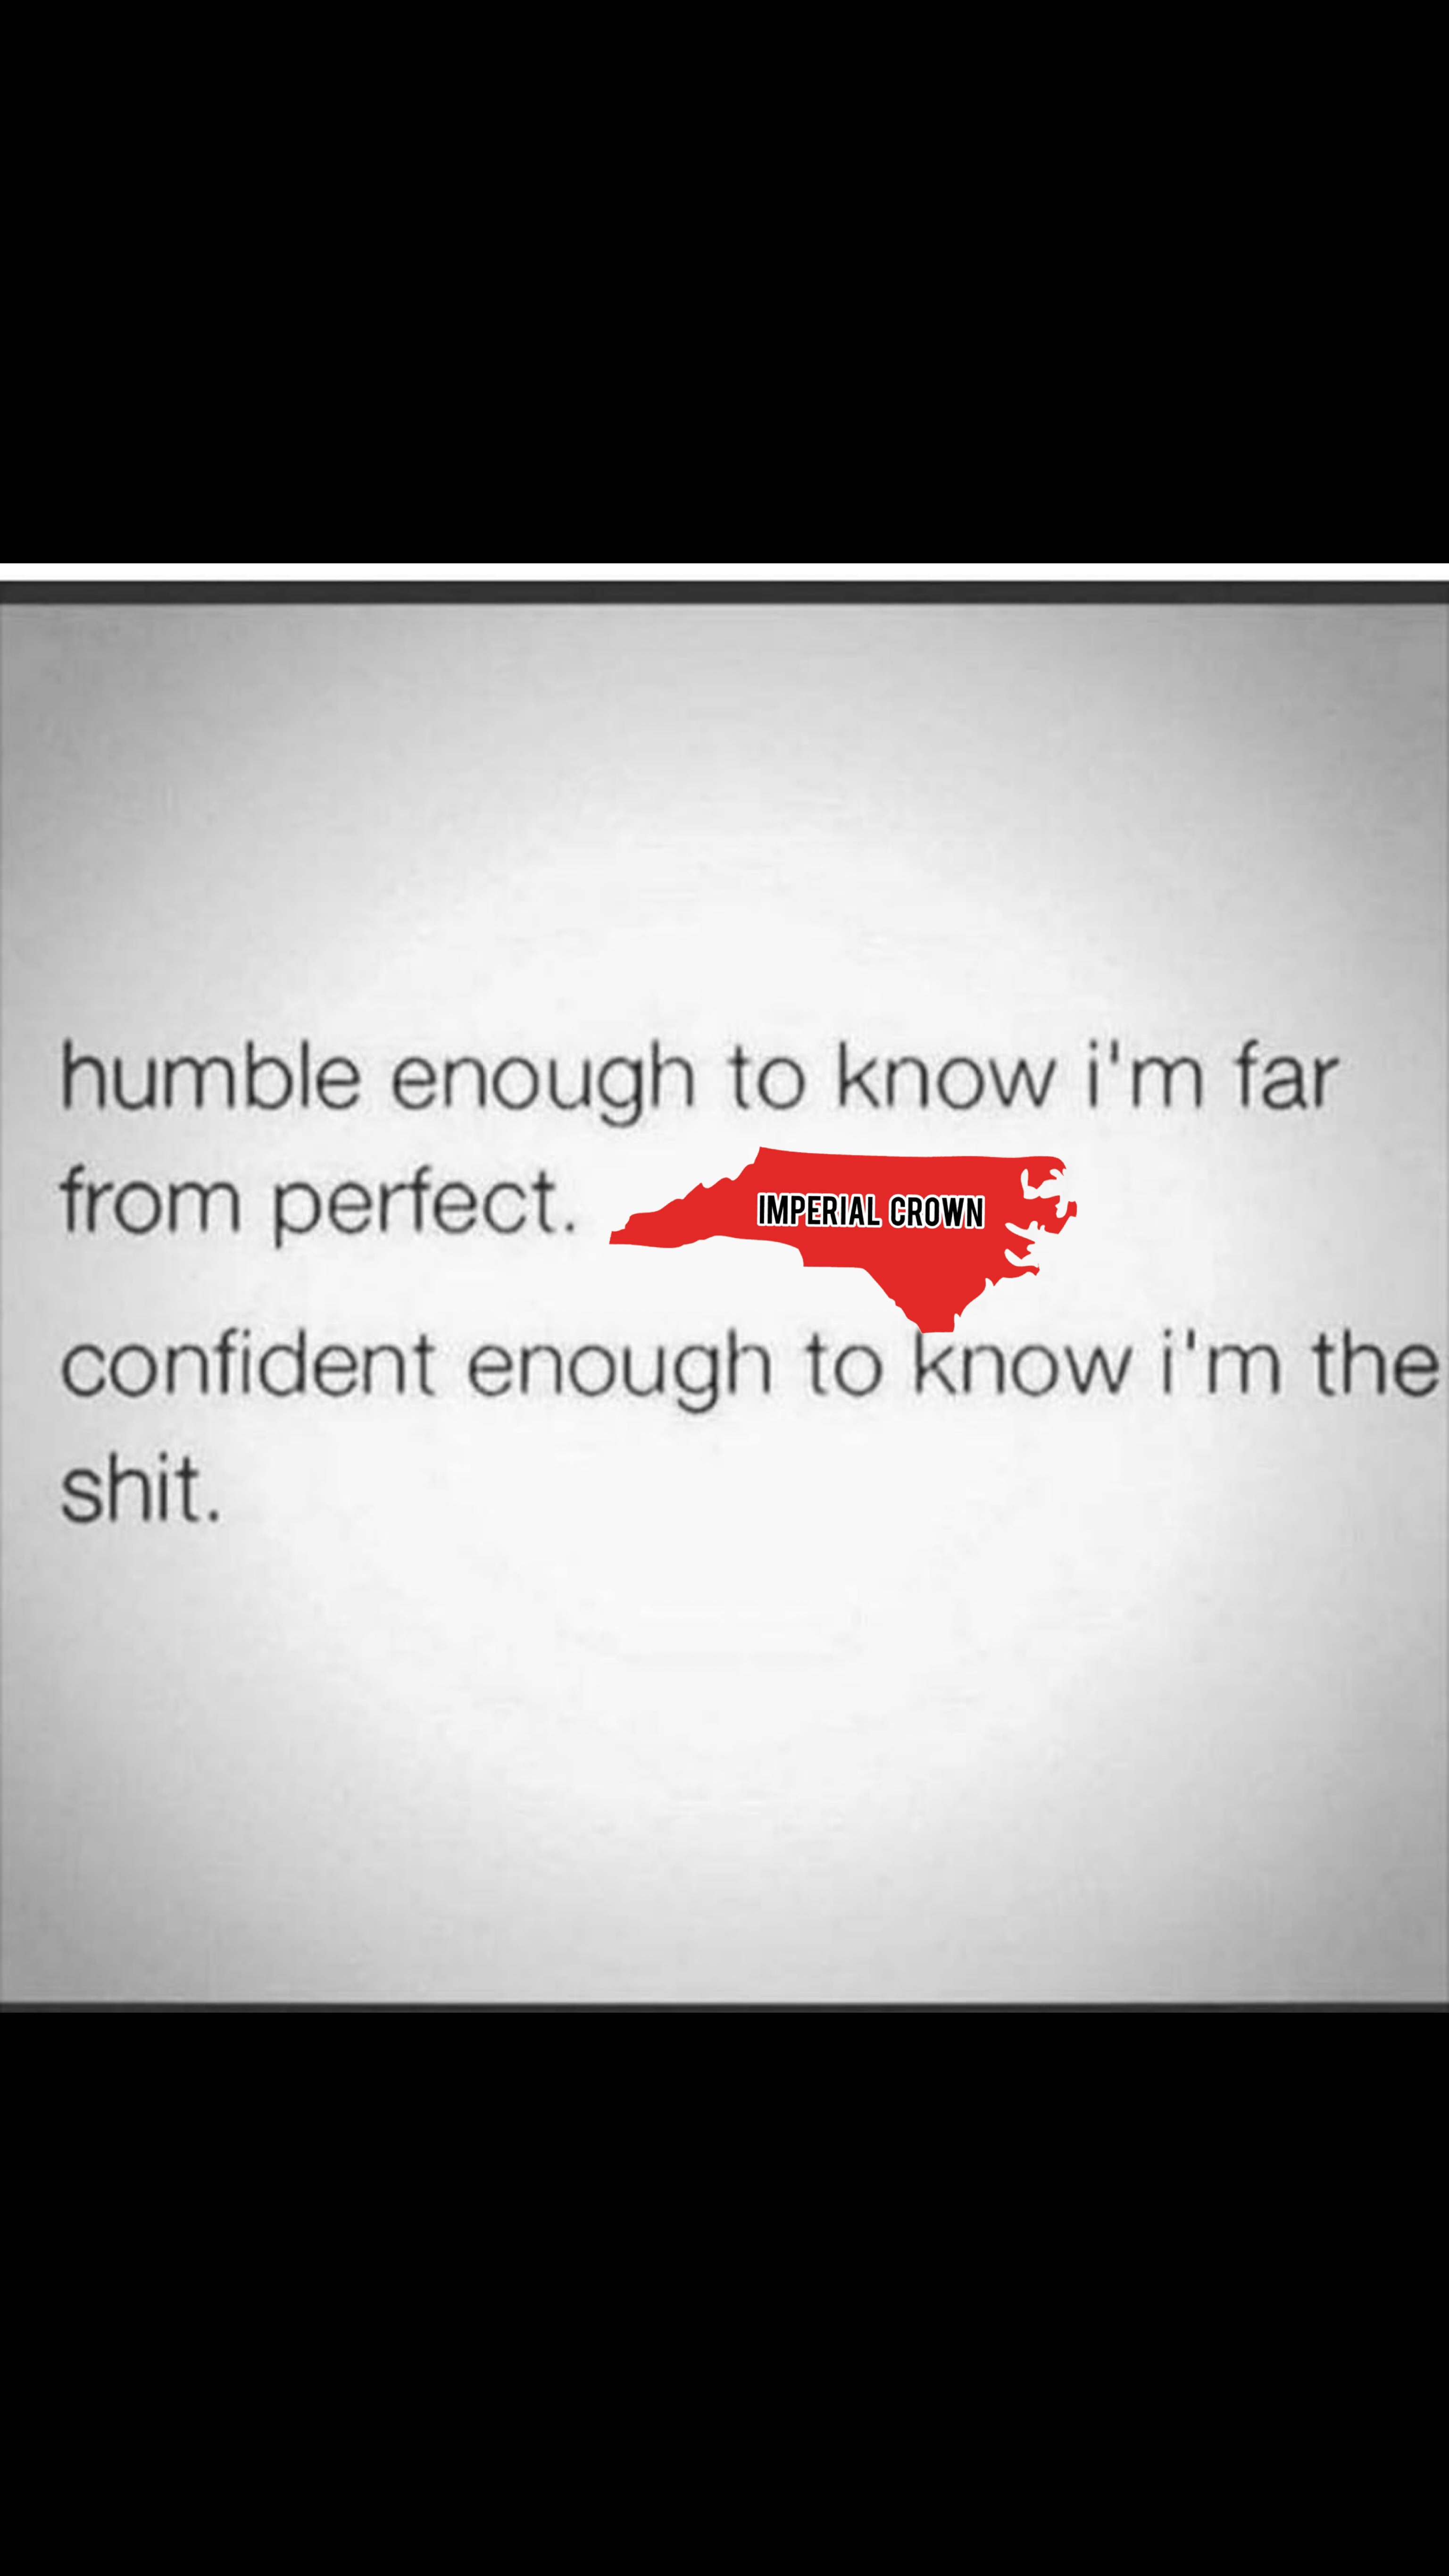 Humble enough to know I'm far from perfect……